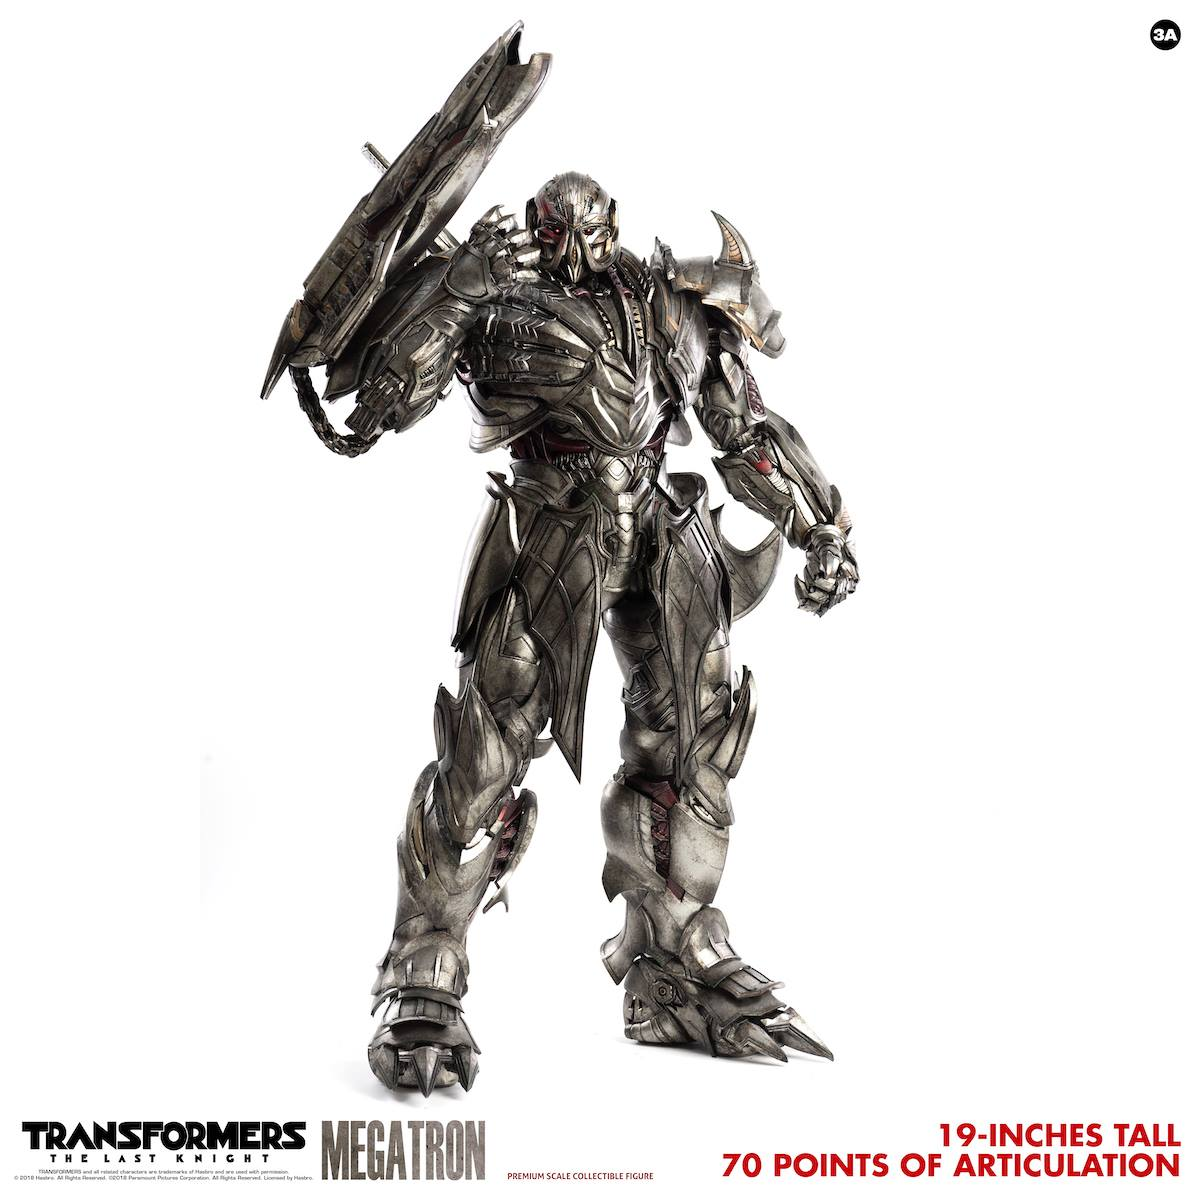 ThreeA - Premium Scale Collectible Series - Transformers: The Last Knight - Megatron (Deluxe)